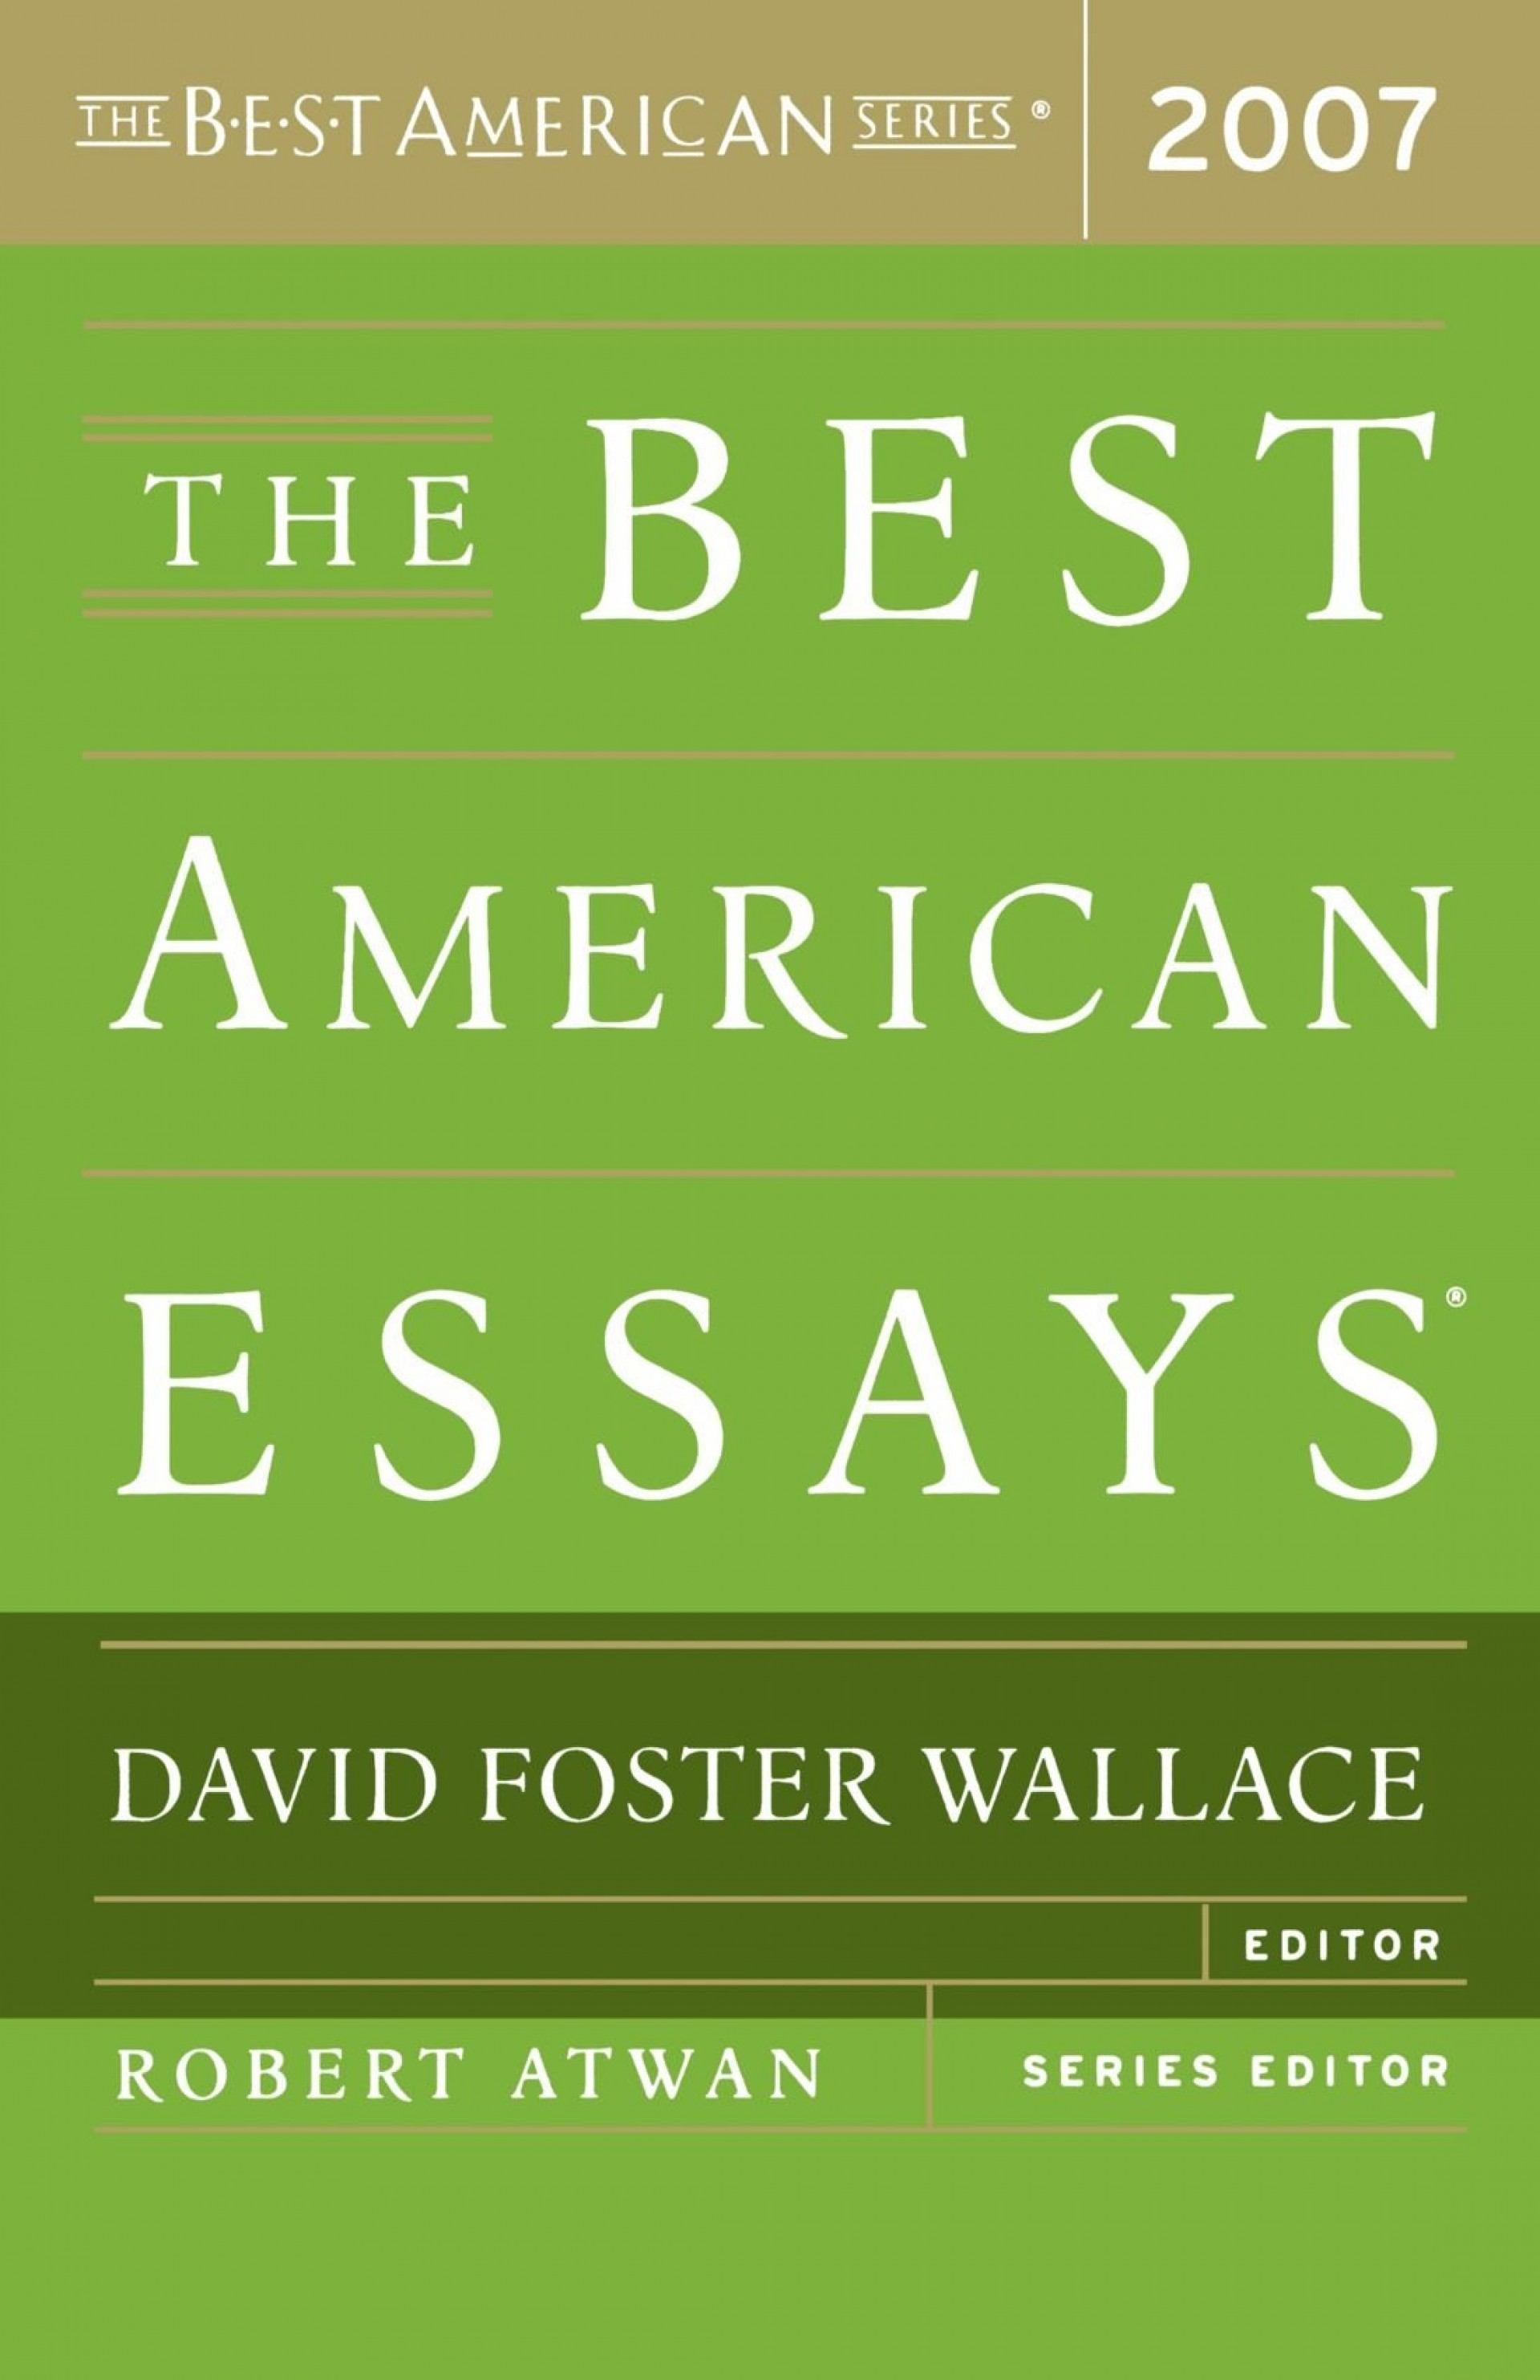 002 Essay Example David Foster Wallace Singular On Television Consider Critical Essays This Is Water 1920